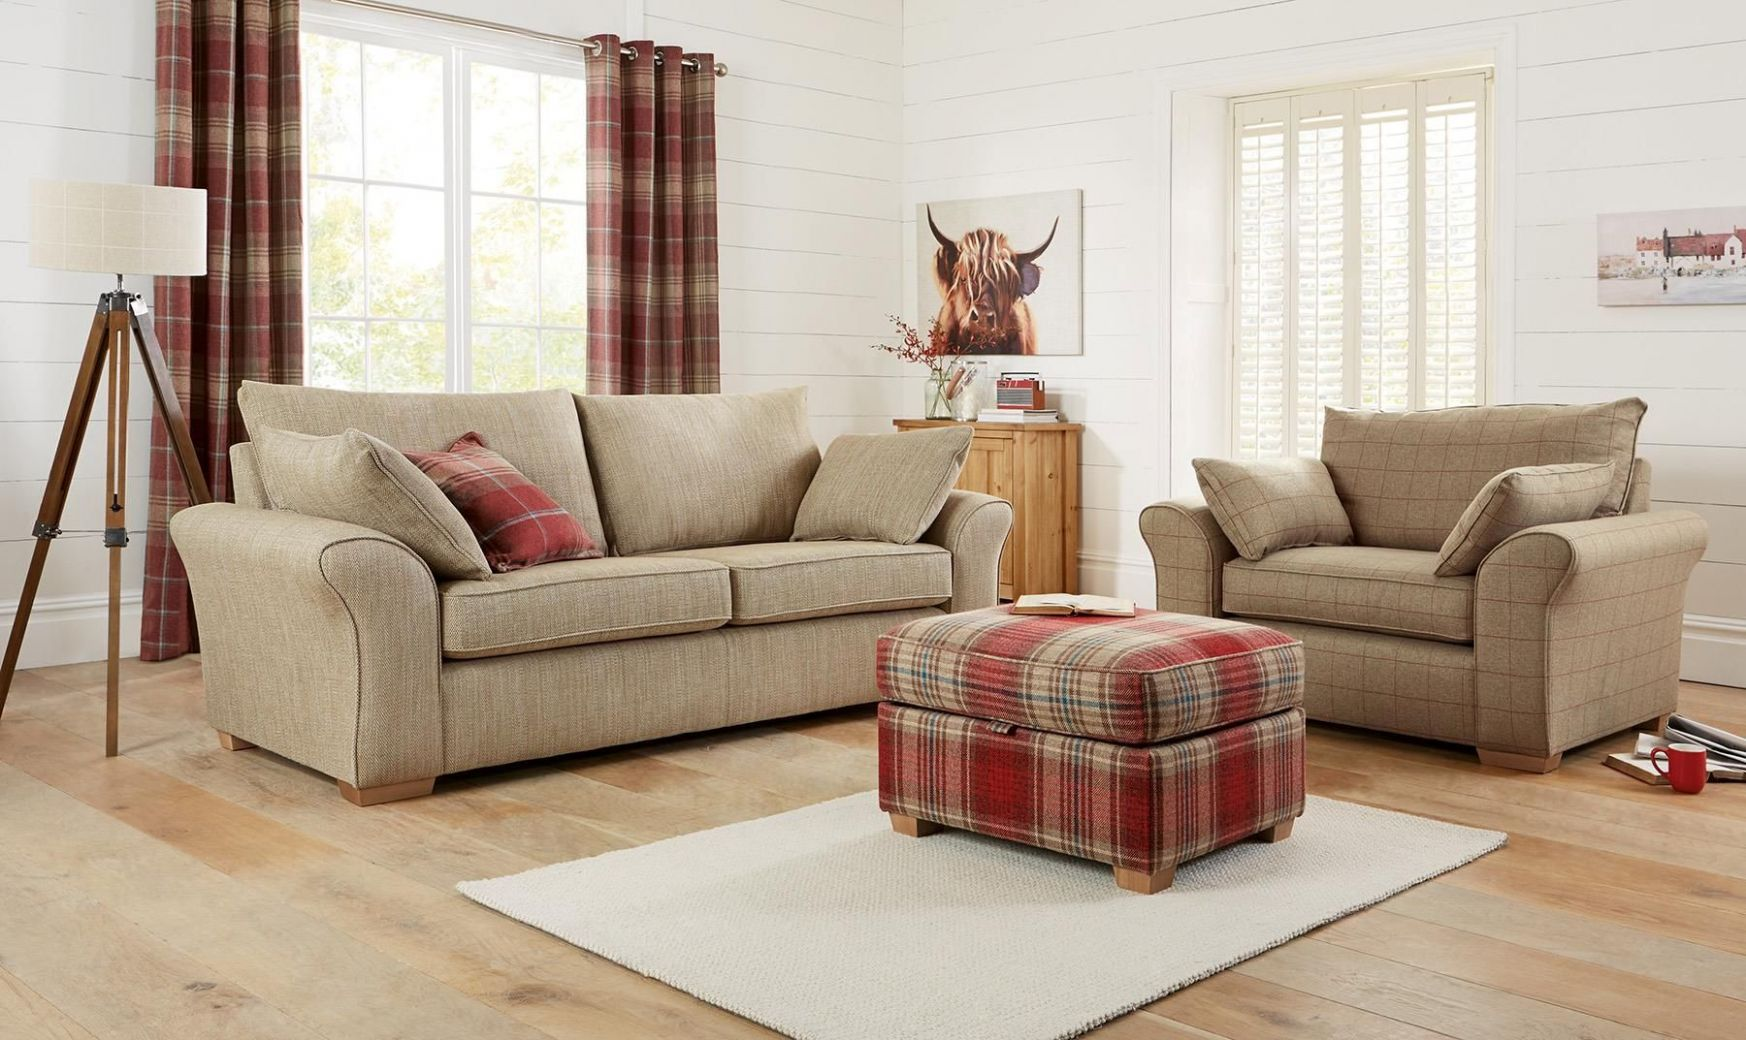 Next tartan living room … (With images) | Next living room ..